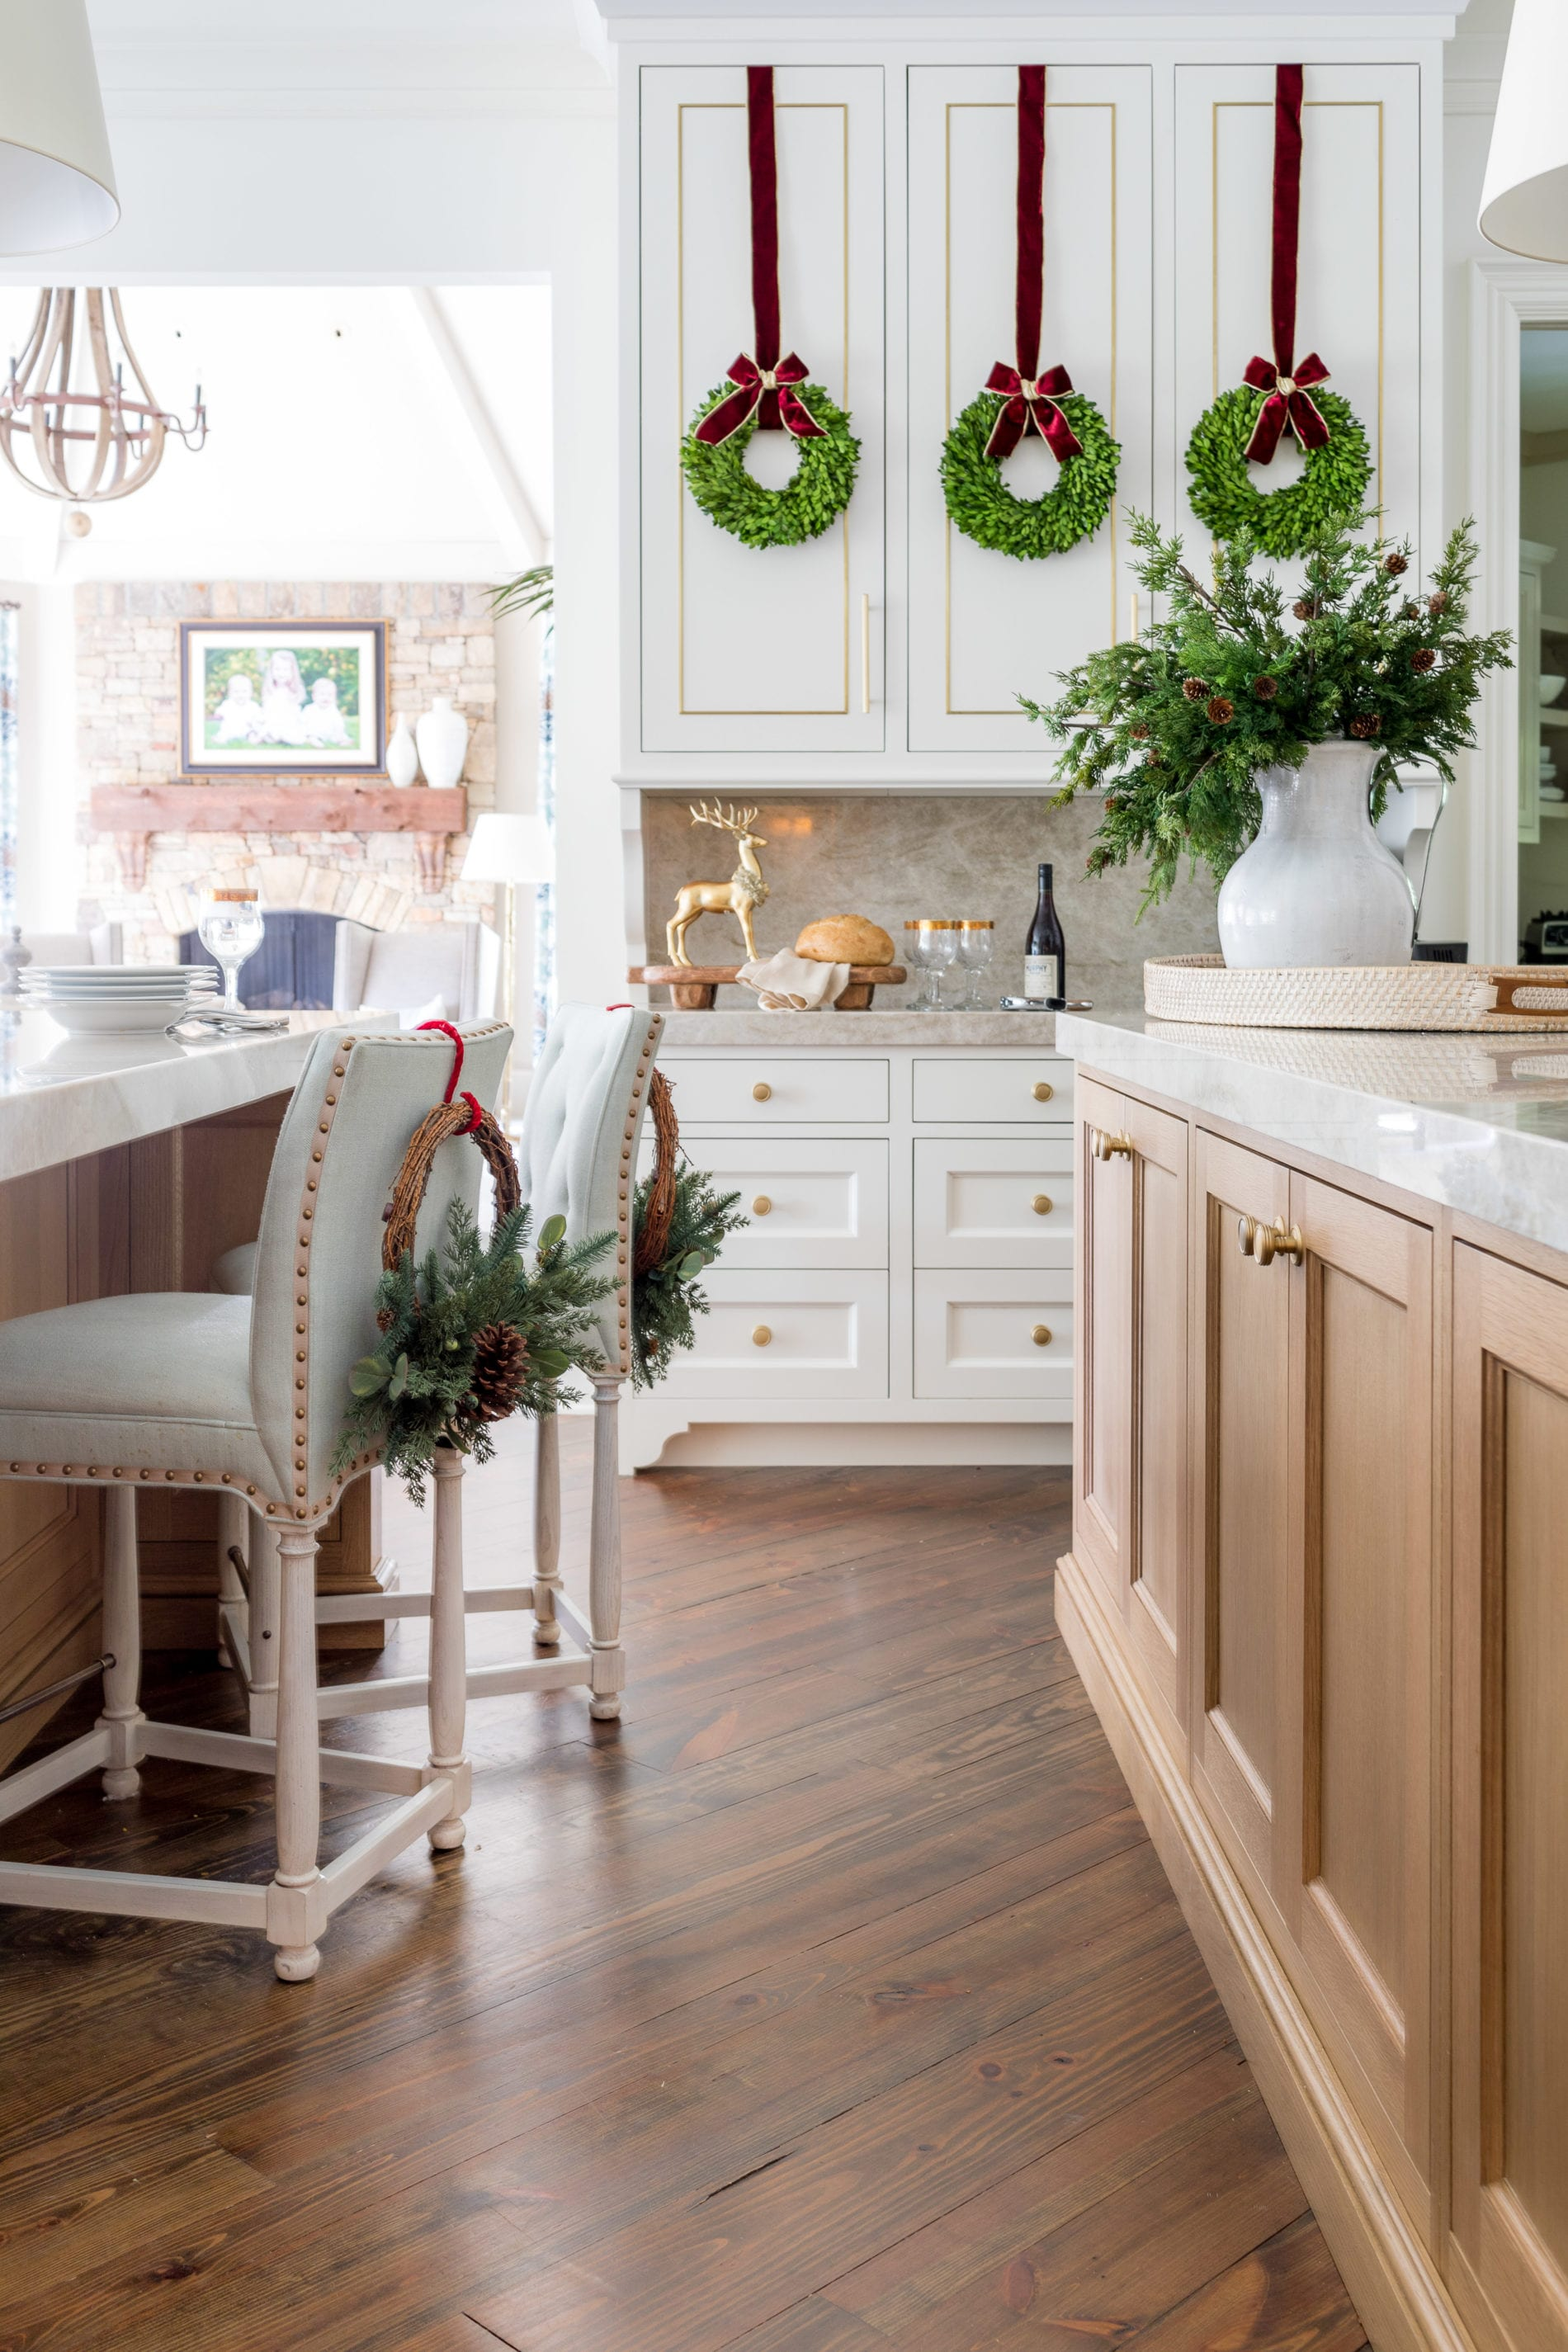 Fresh greenery in the kitchen is beautiful, but who has time these days? I discovered the best faux greenery garland. I mixed faux cedar garland to make a perfectly imperfect farmhouse garland feel. The best faux cedar garland is so life-like it feels almost damp feel! A beautiful look that will last all holiday long!